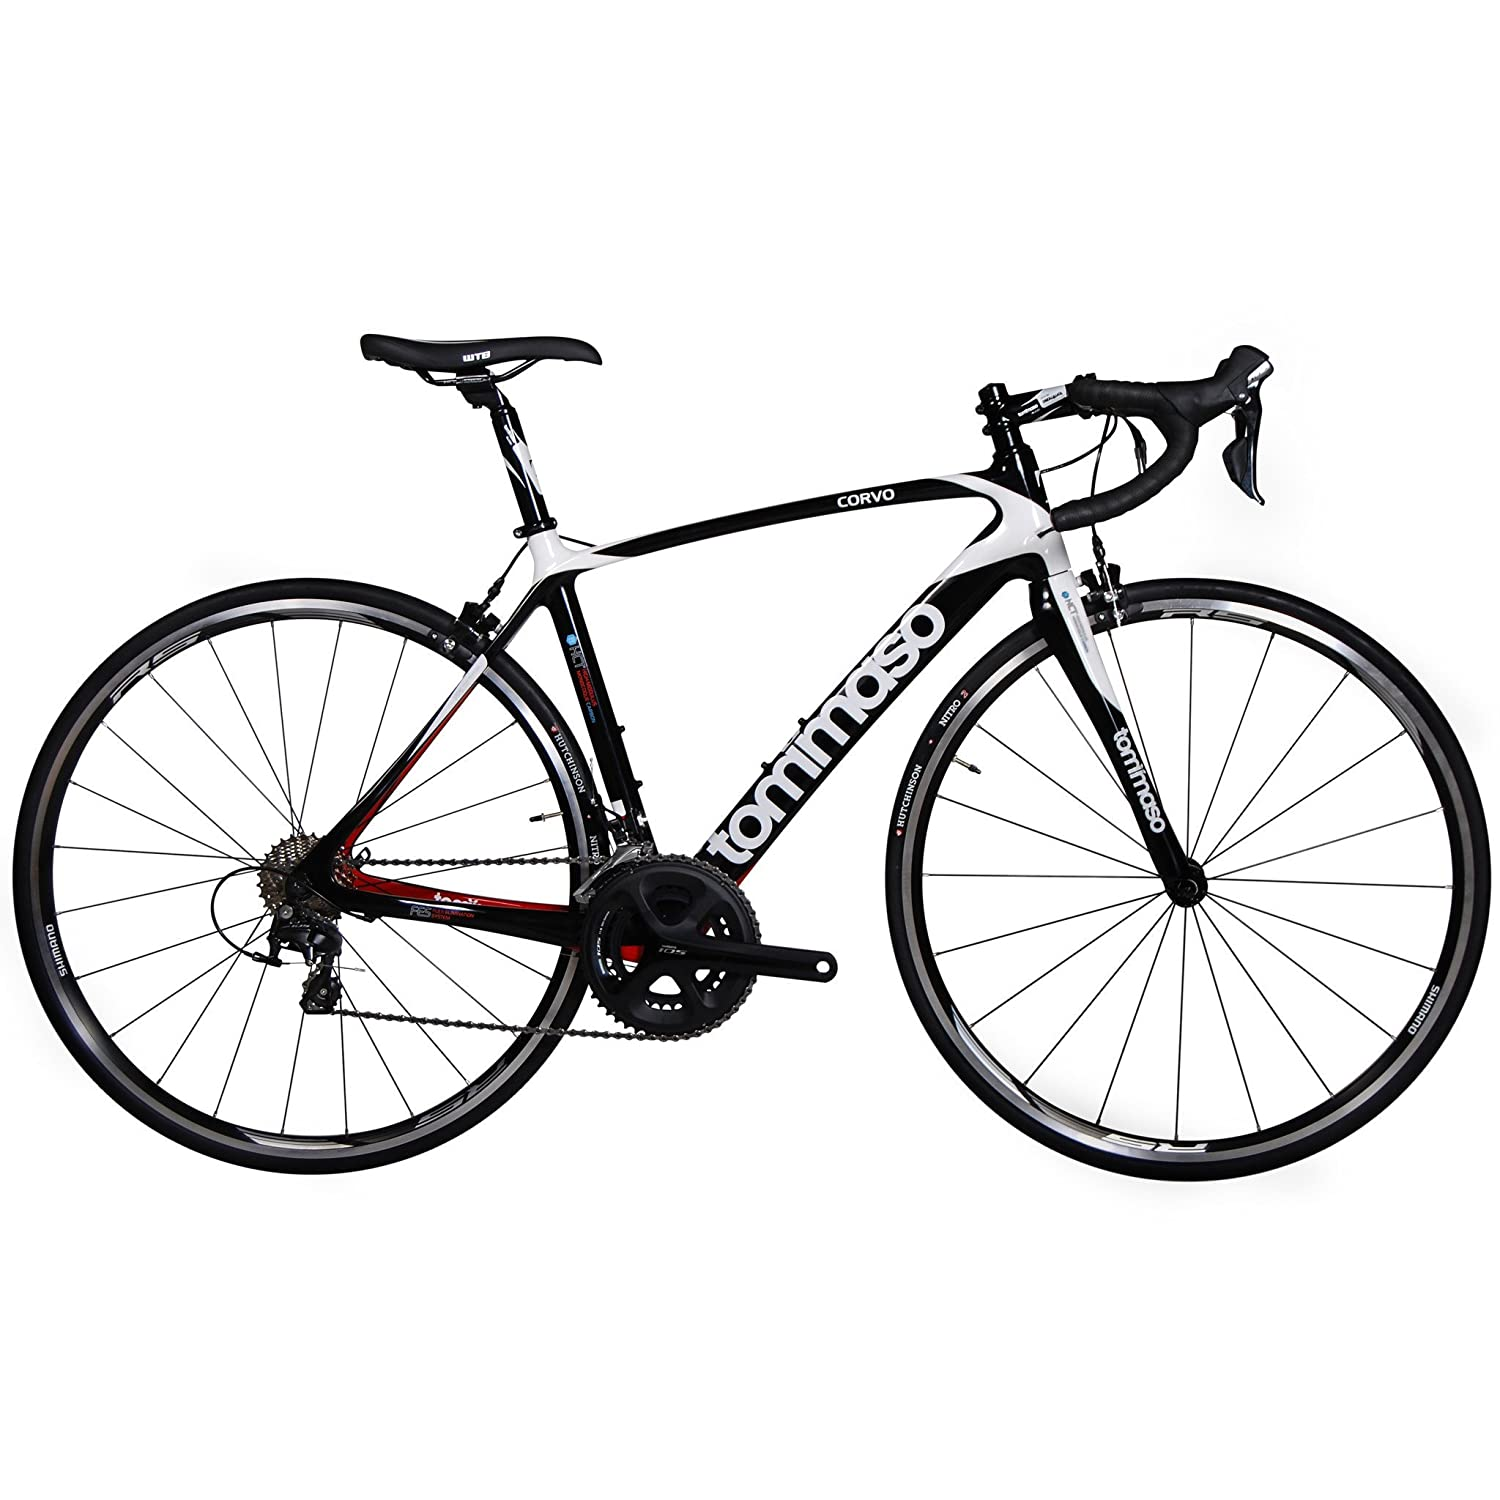 Carbon Fiber Road Bike >> Amazon Com Tommaso Corvo Carbon Fiber Endurance Road Bike Shimano